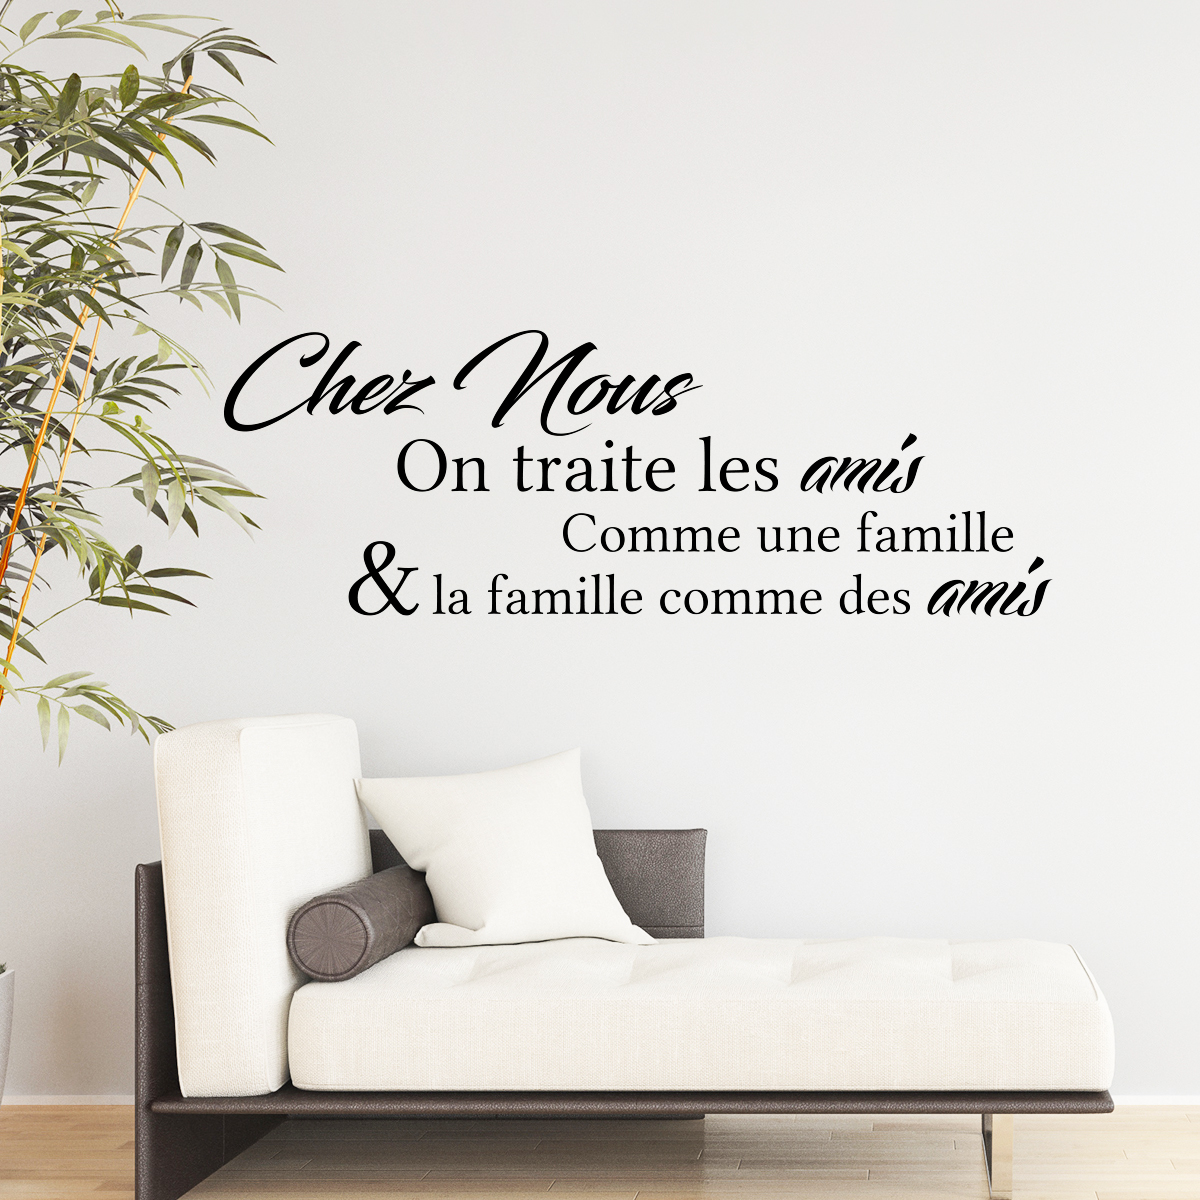 sticker citation chez nous on traite les amis stickers citations fran ais ambiance sticker. Black Bedroom Furniture Sets. Home Design Ideas